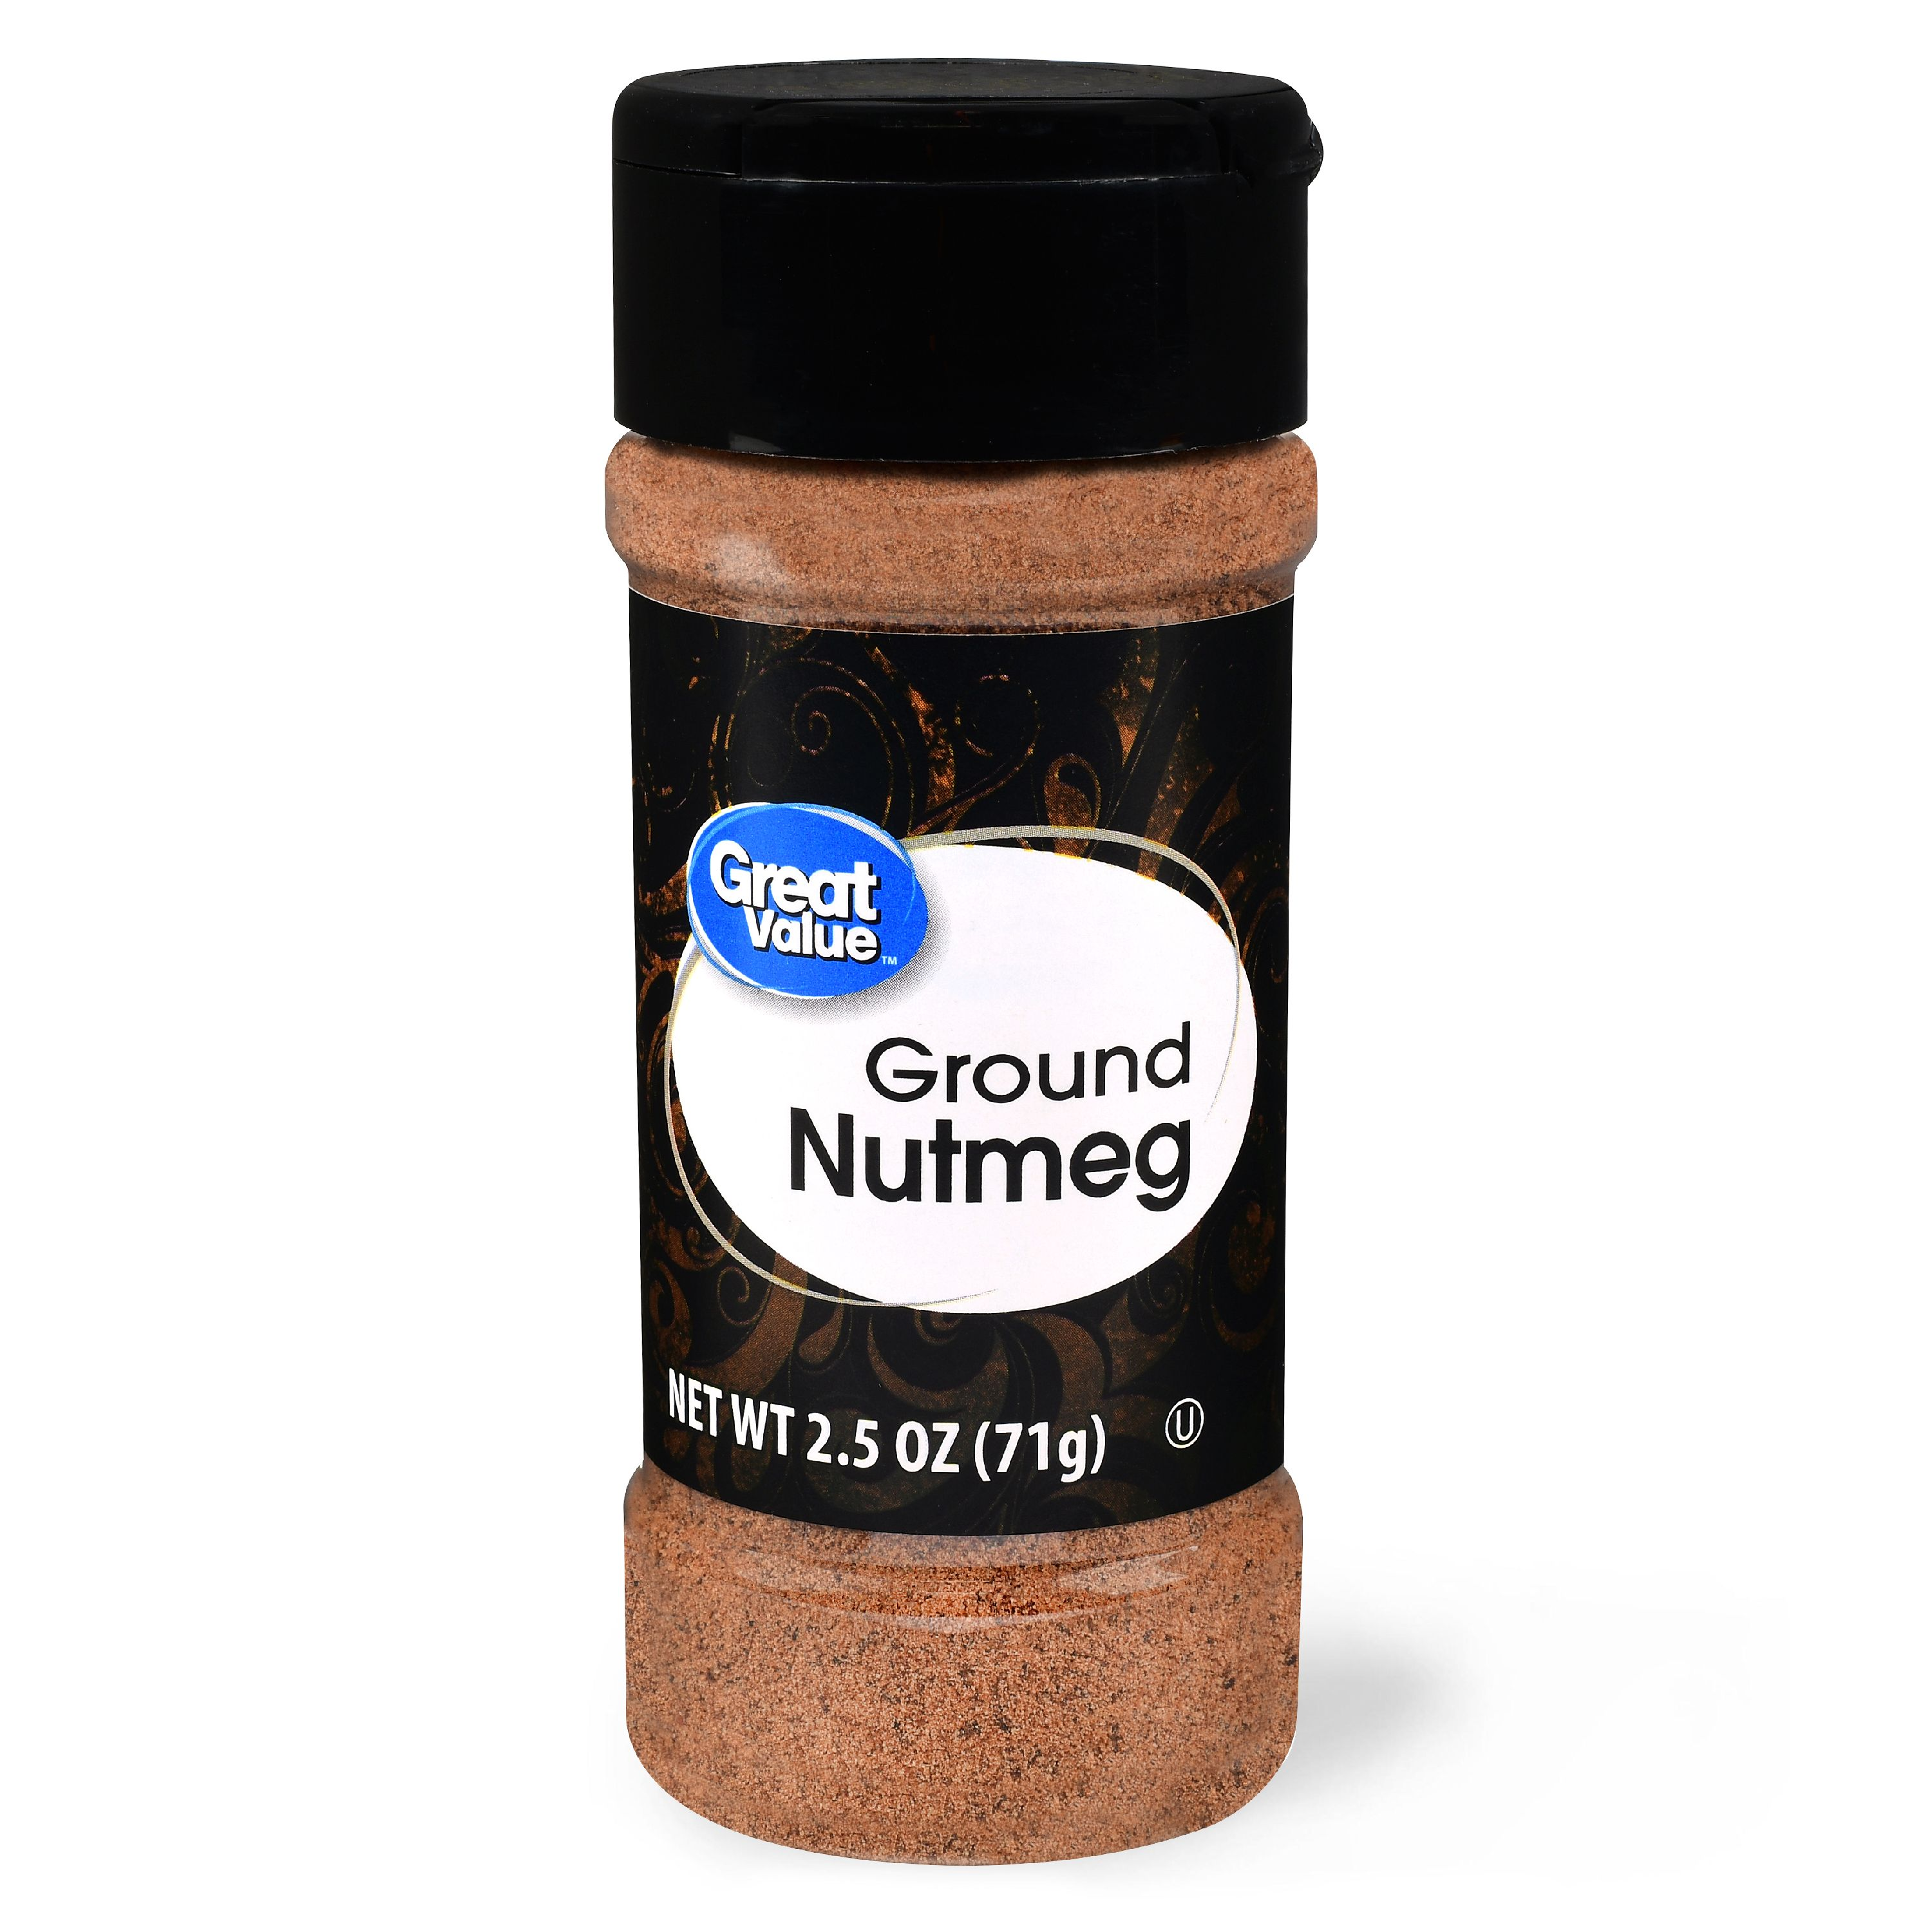 (2 Pack) Great Value Ground Nutmeg, 2.5 oz